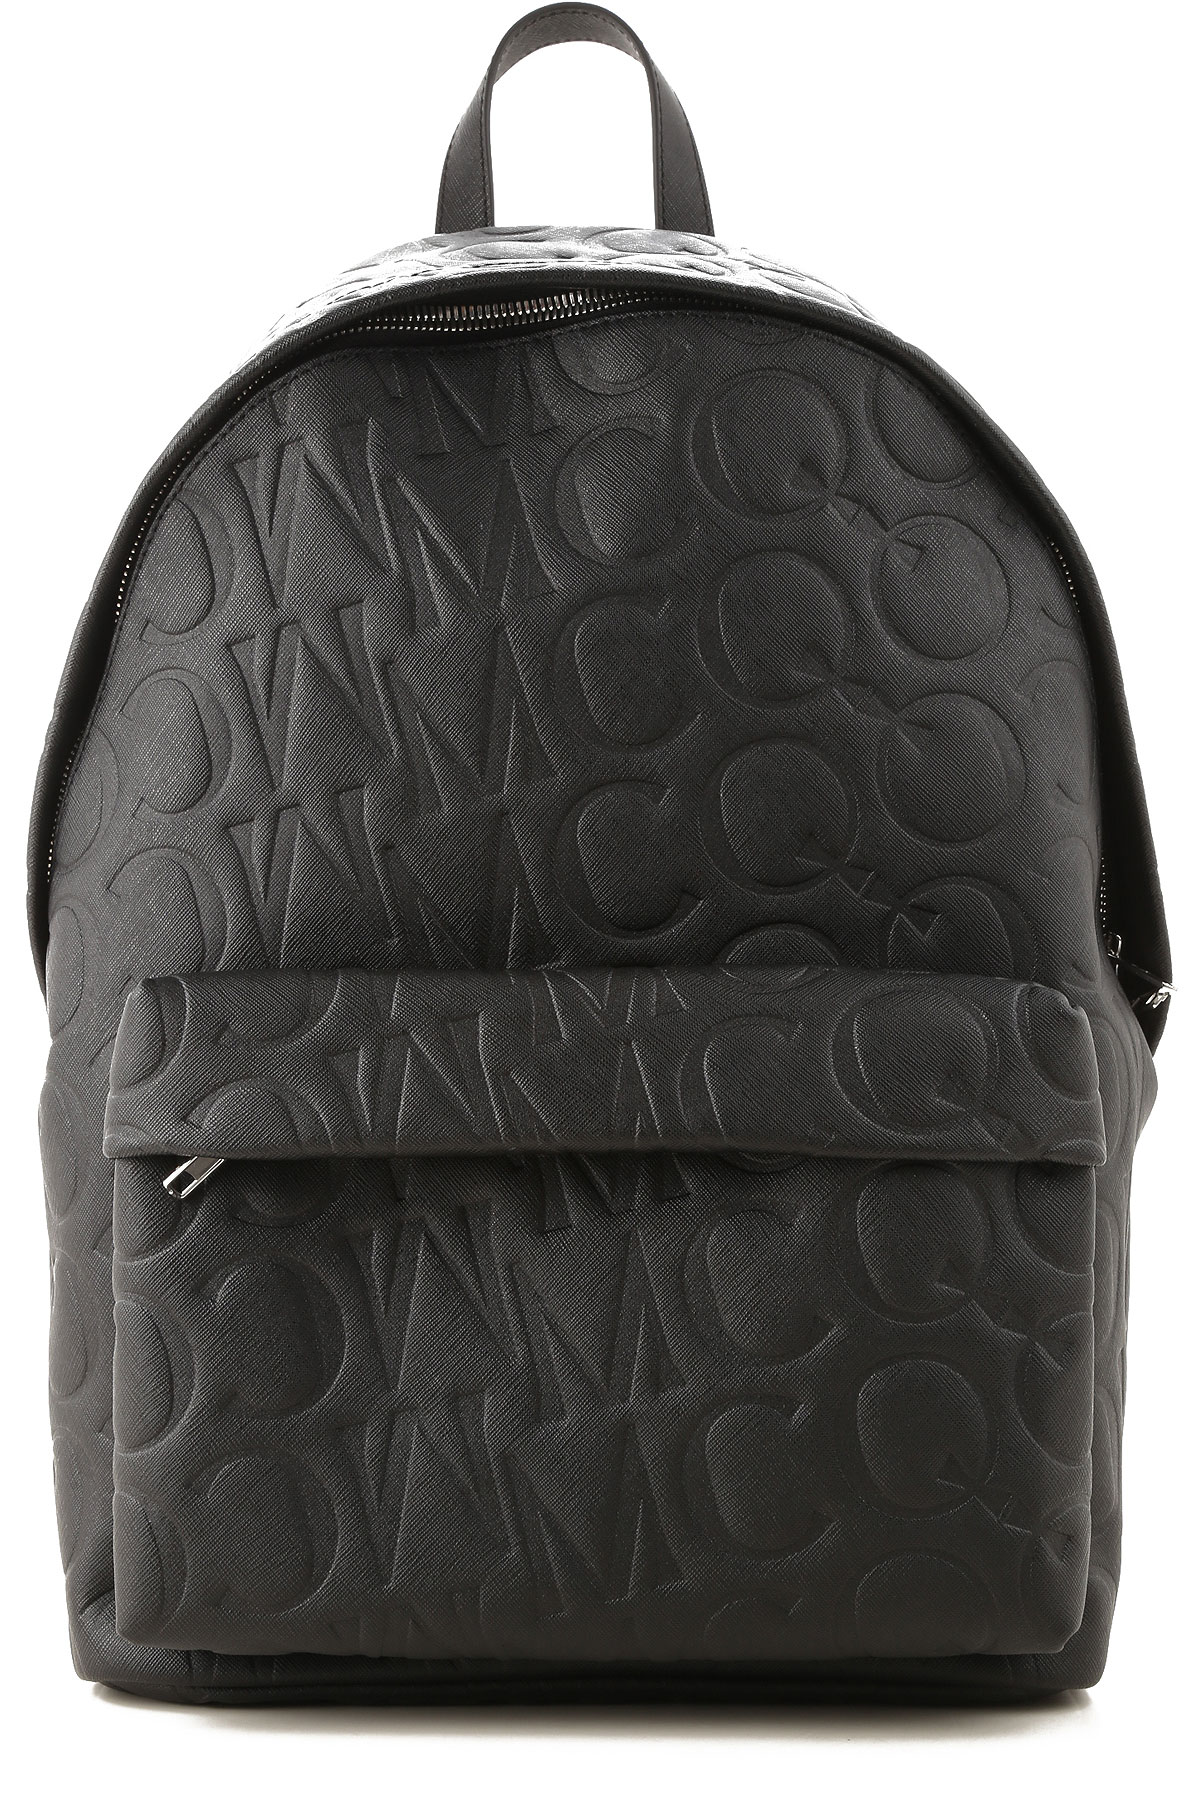 Alexander McQueen McQ Backpack for Men On Sale, Black, Leather, 2019